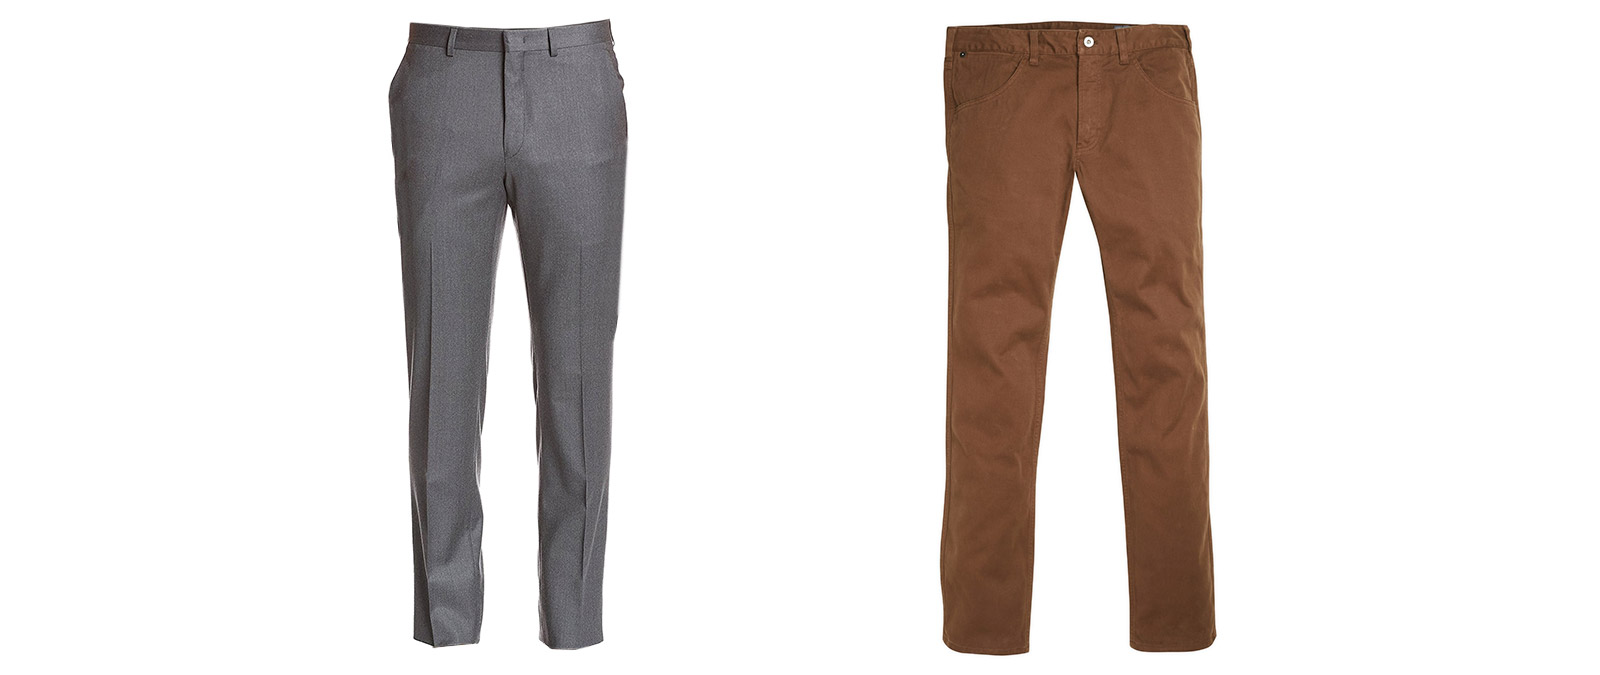 men's winter fashion pants